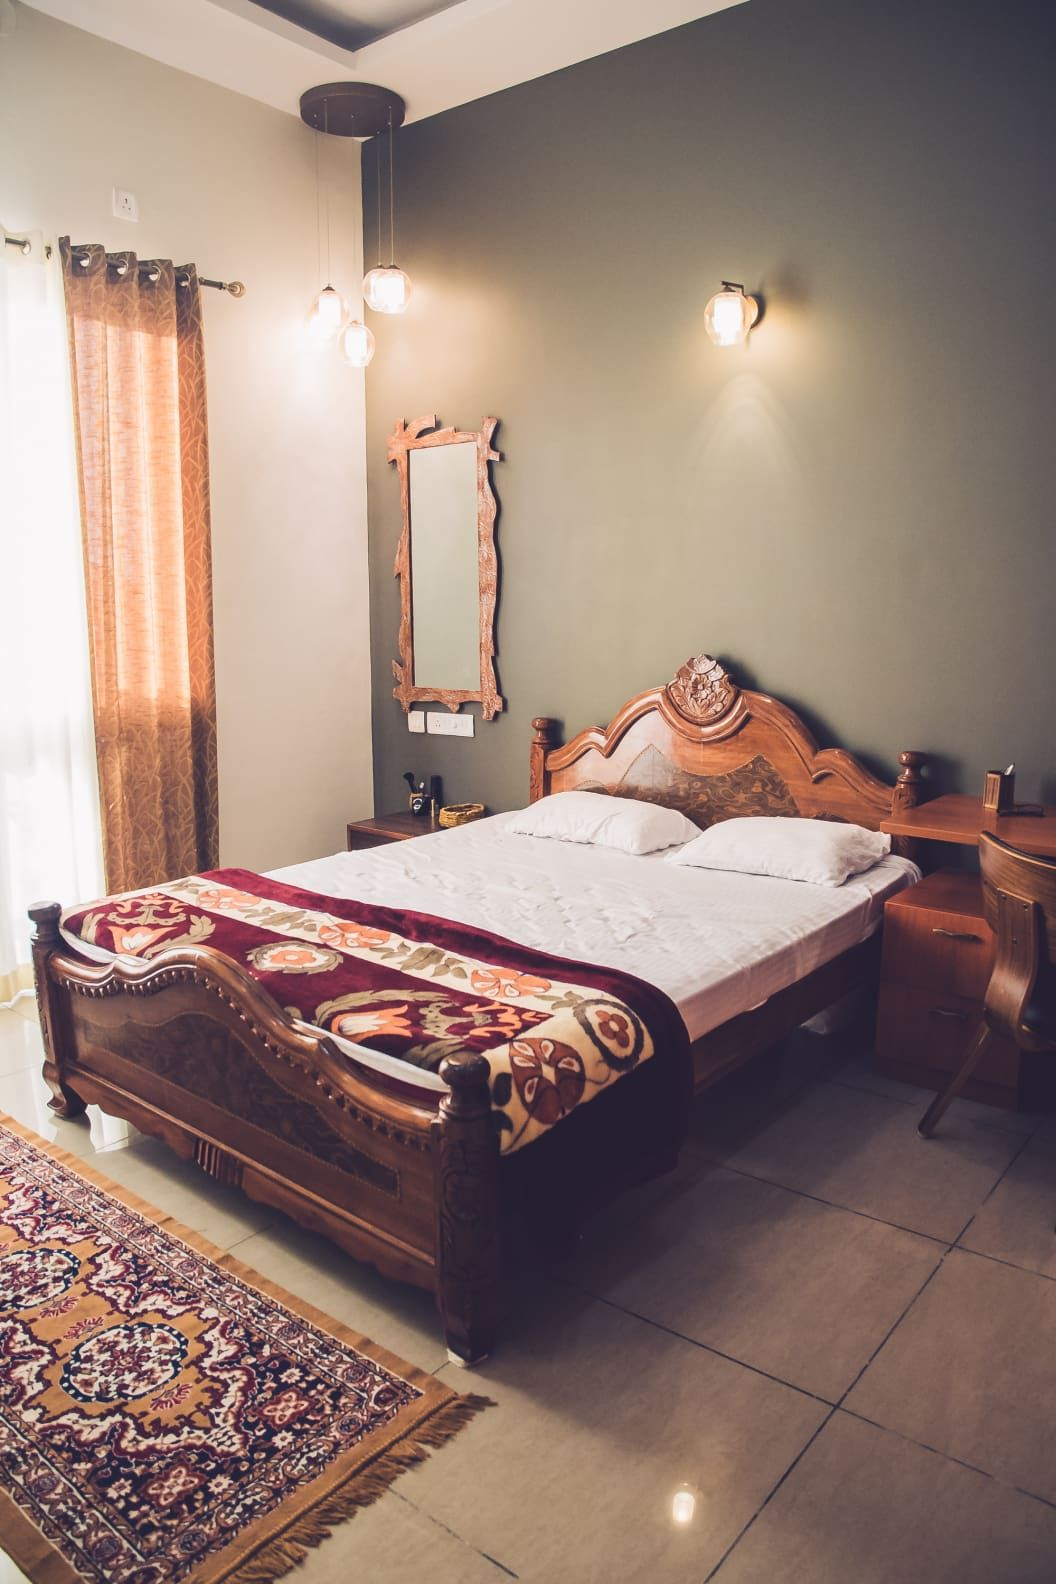 6 Unique Bedroom Wall Paint Colours That Work for Indian ...